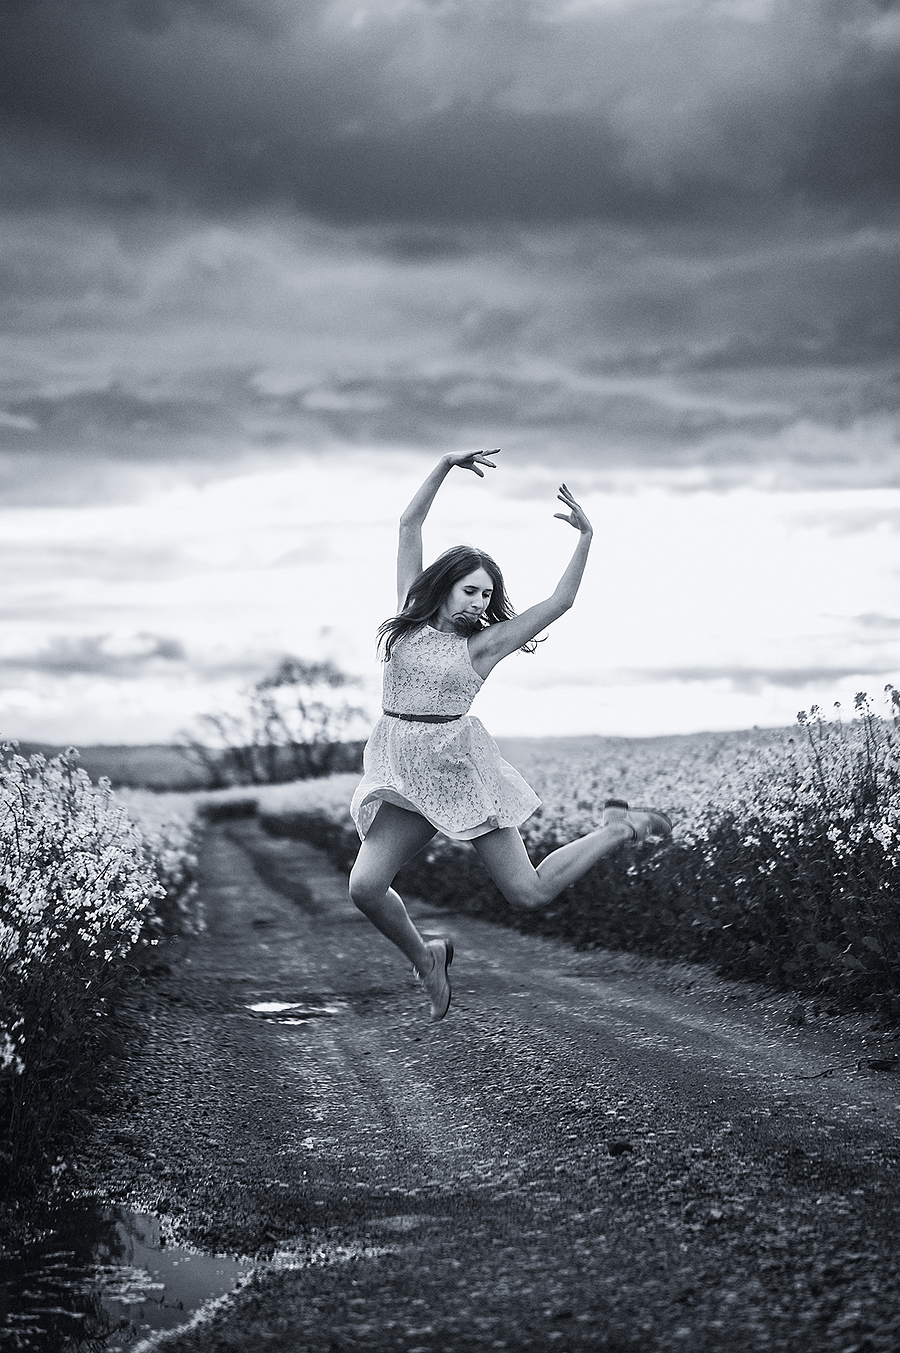 Dancing in the fields / Photography by jakabi / Uploaded 2nd September 2015 @ 12:11 PM